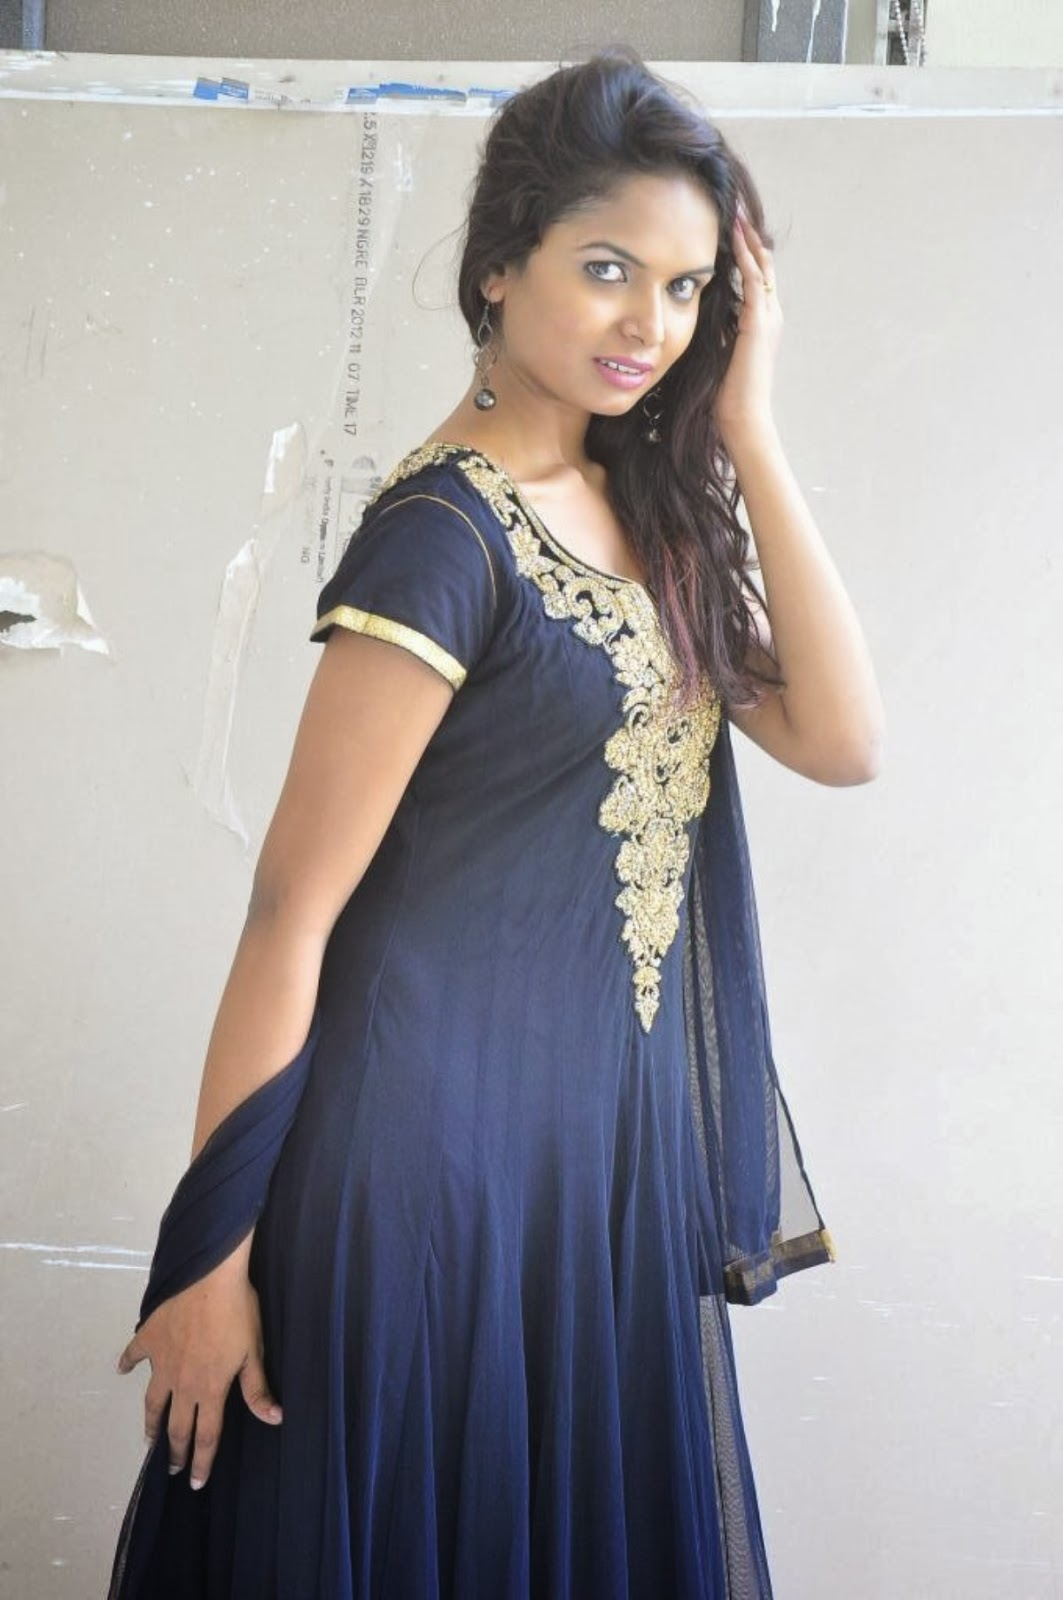 Aasha photos in salwar kameez at freedom from corruption movie press meet